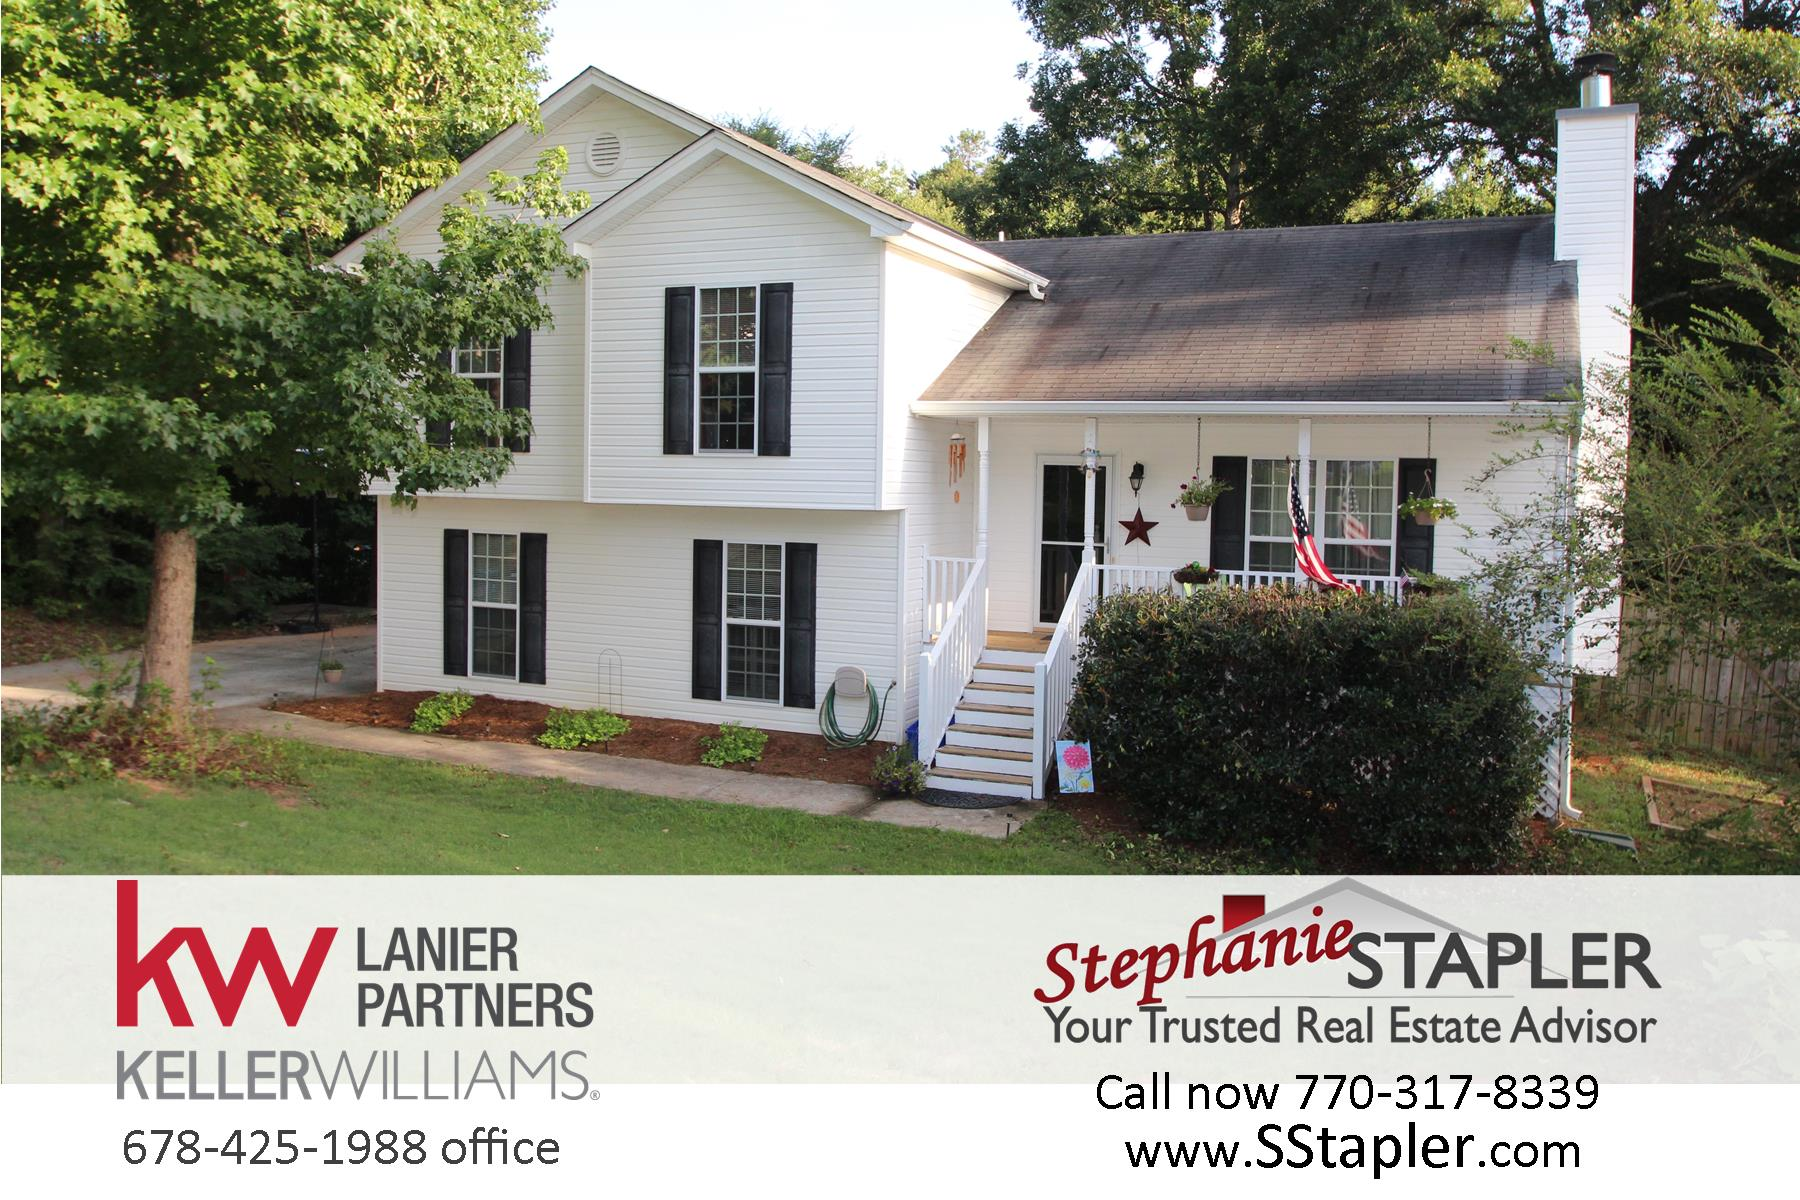 rocking chair realty black leather club home for sale 4bd / 3ba on 1.6 acre cul-de-sac lot – emerald pointe subdivision in barrow county ...